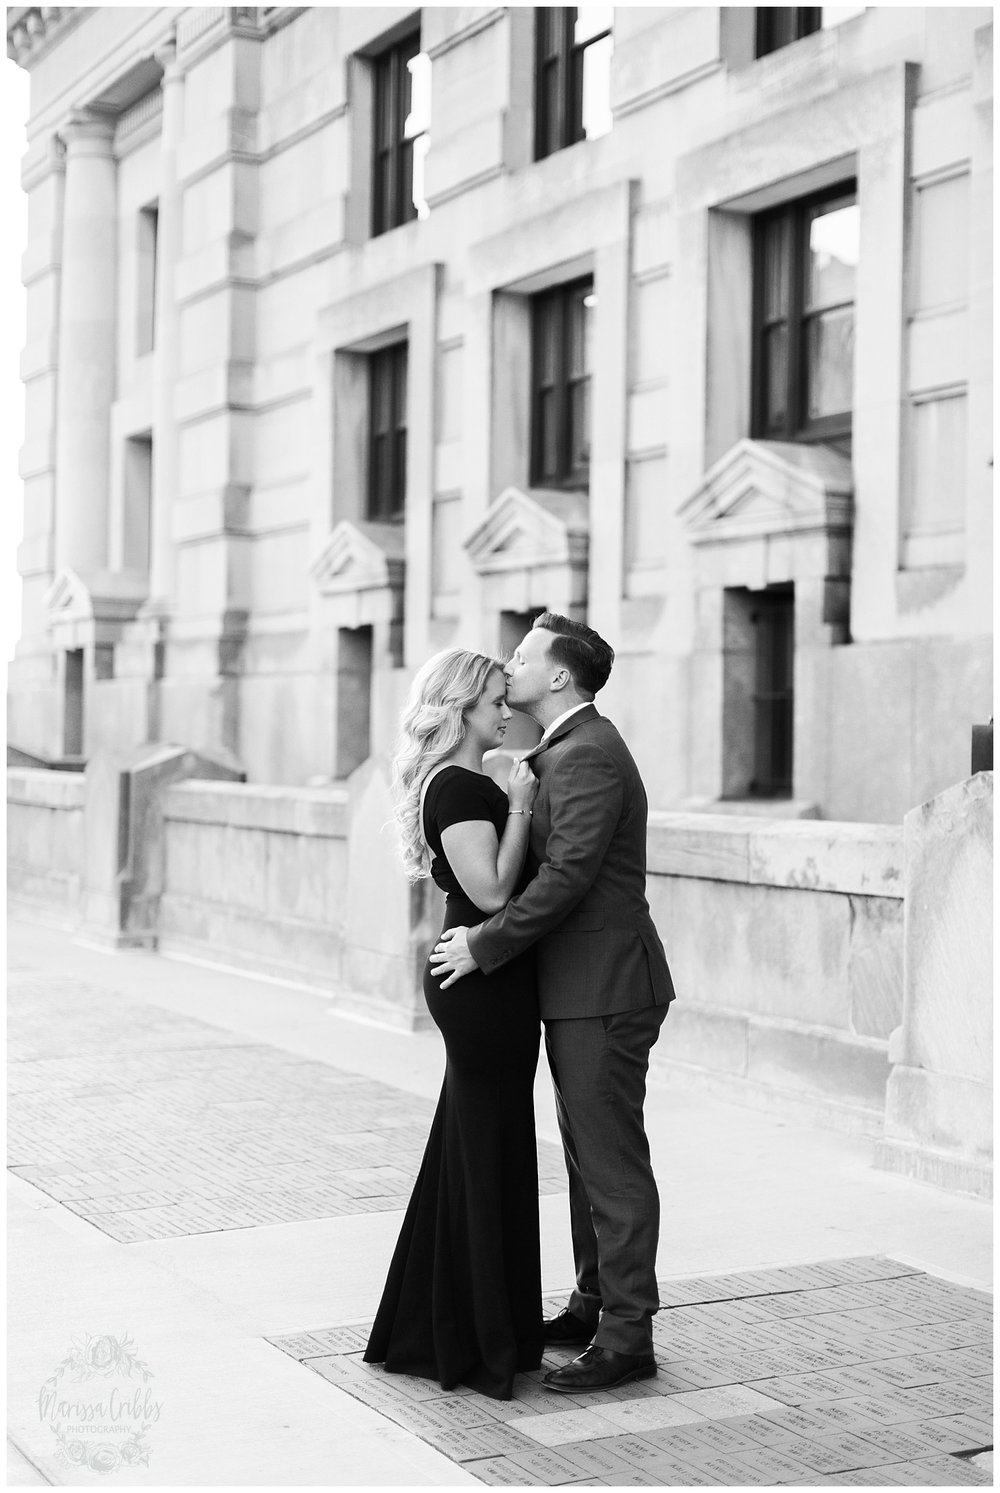 JACLYN & CHASE ENGAGEMENT | KC LIBERTY MEMORIAL ENGAGEMENT | UNION STATION | MARISSA CRIBBS PHOTOGRAPHY_3324.jpg